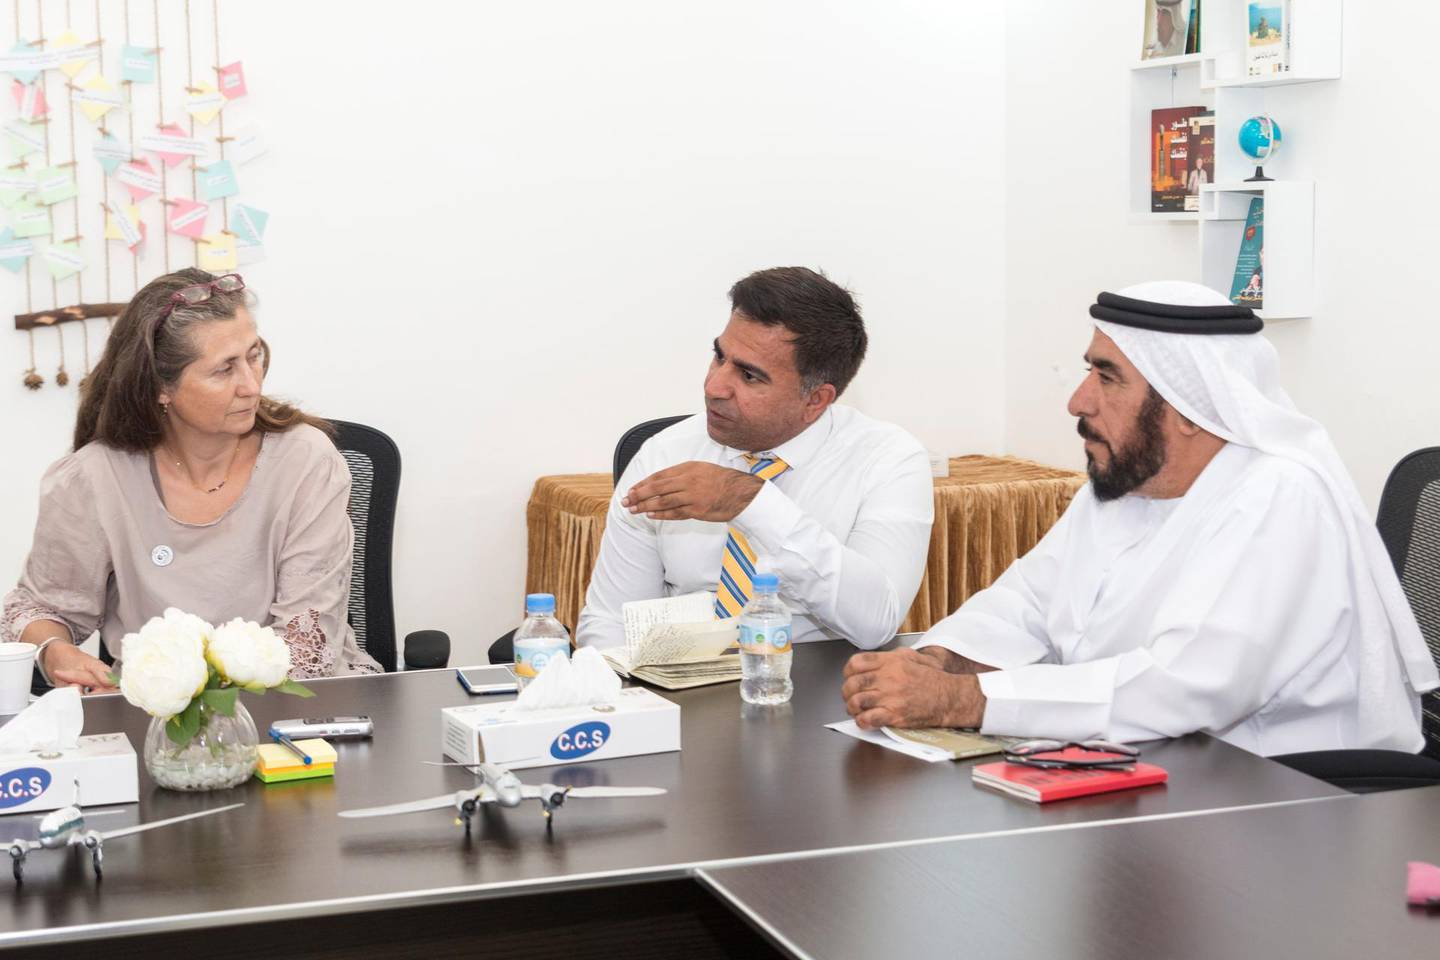 Sharjah, UAE - Mar 19, 2018 - Ms. Hazelle Page, Collections Manager for Sharjah Museums Authority, Mr. Ali Iqbal, a prominent historian, and Dr. Saif Al Bedwawi, military historian, discuss the wreckage from a World War II era crash site at the Al Mahatta Museum, Sharjah - Navin Khianey for The National